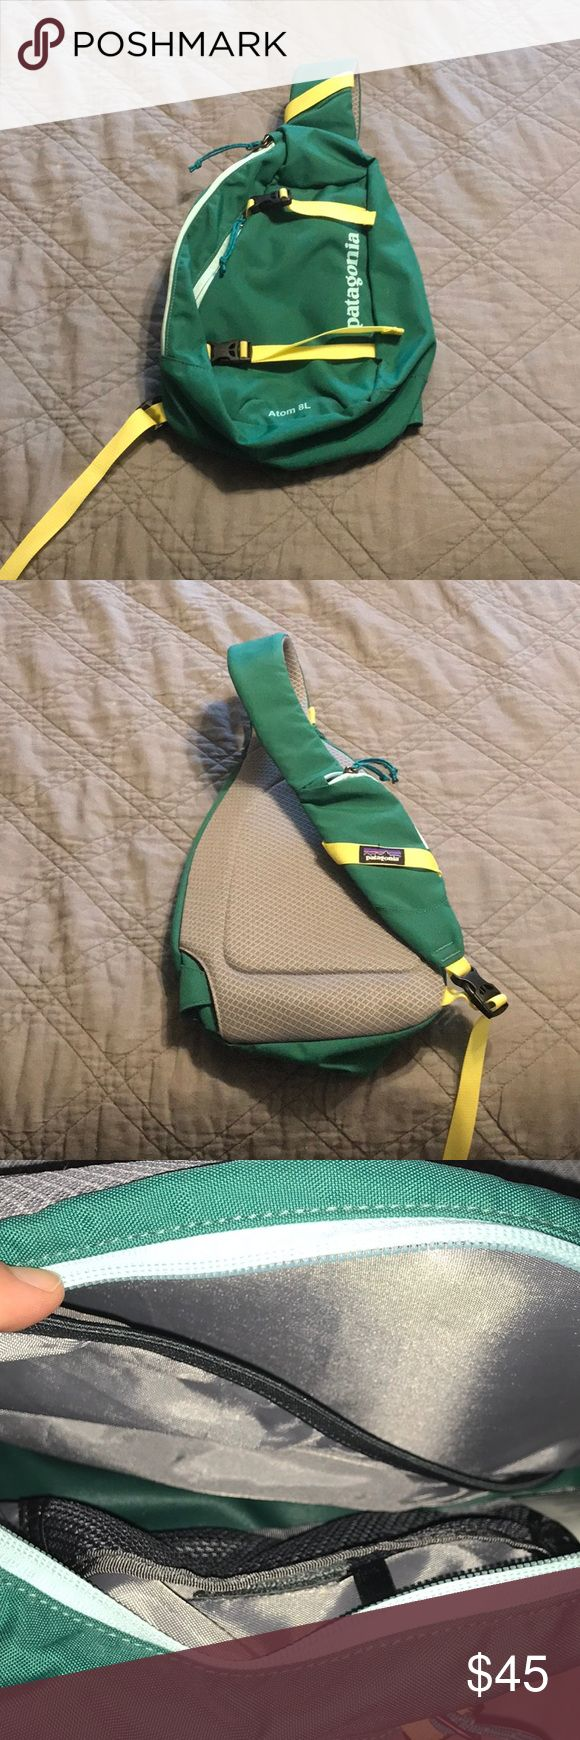 Patagonia Atom Sling Like new Patagonia Atom Sling 8L Green, light blue and yellow.  Great condition! Patagonia Bags